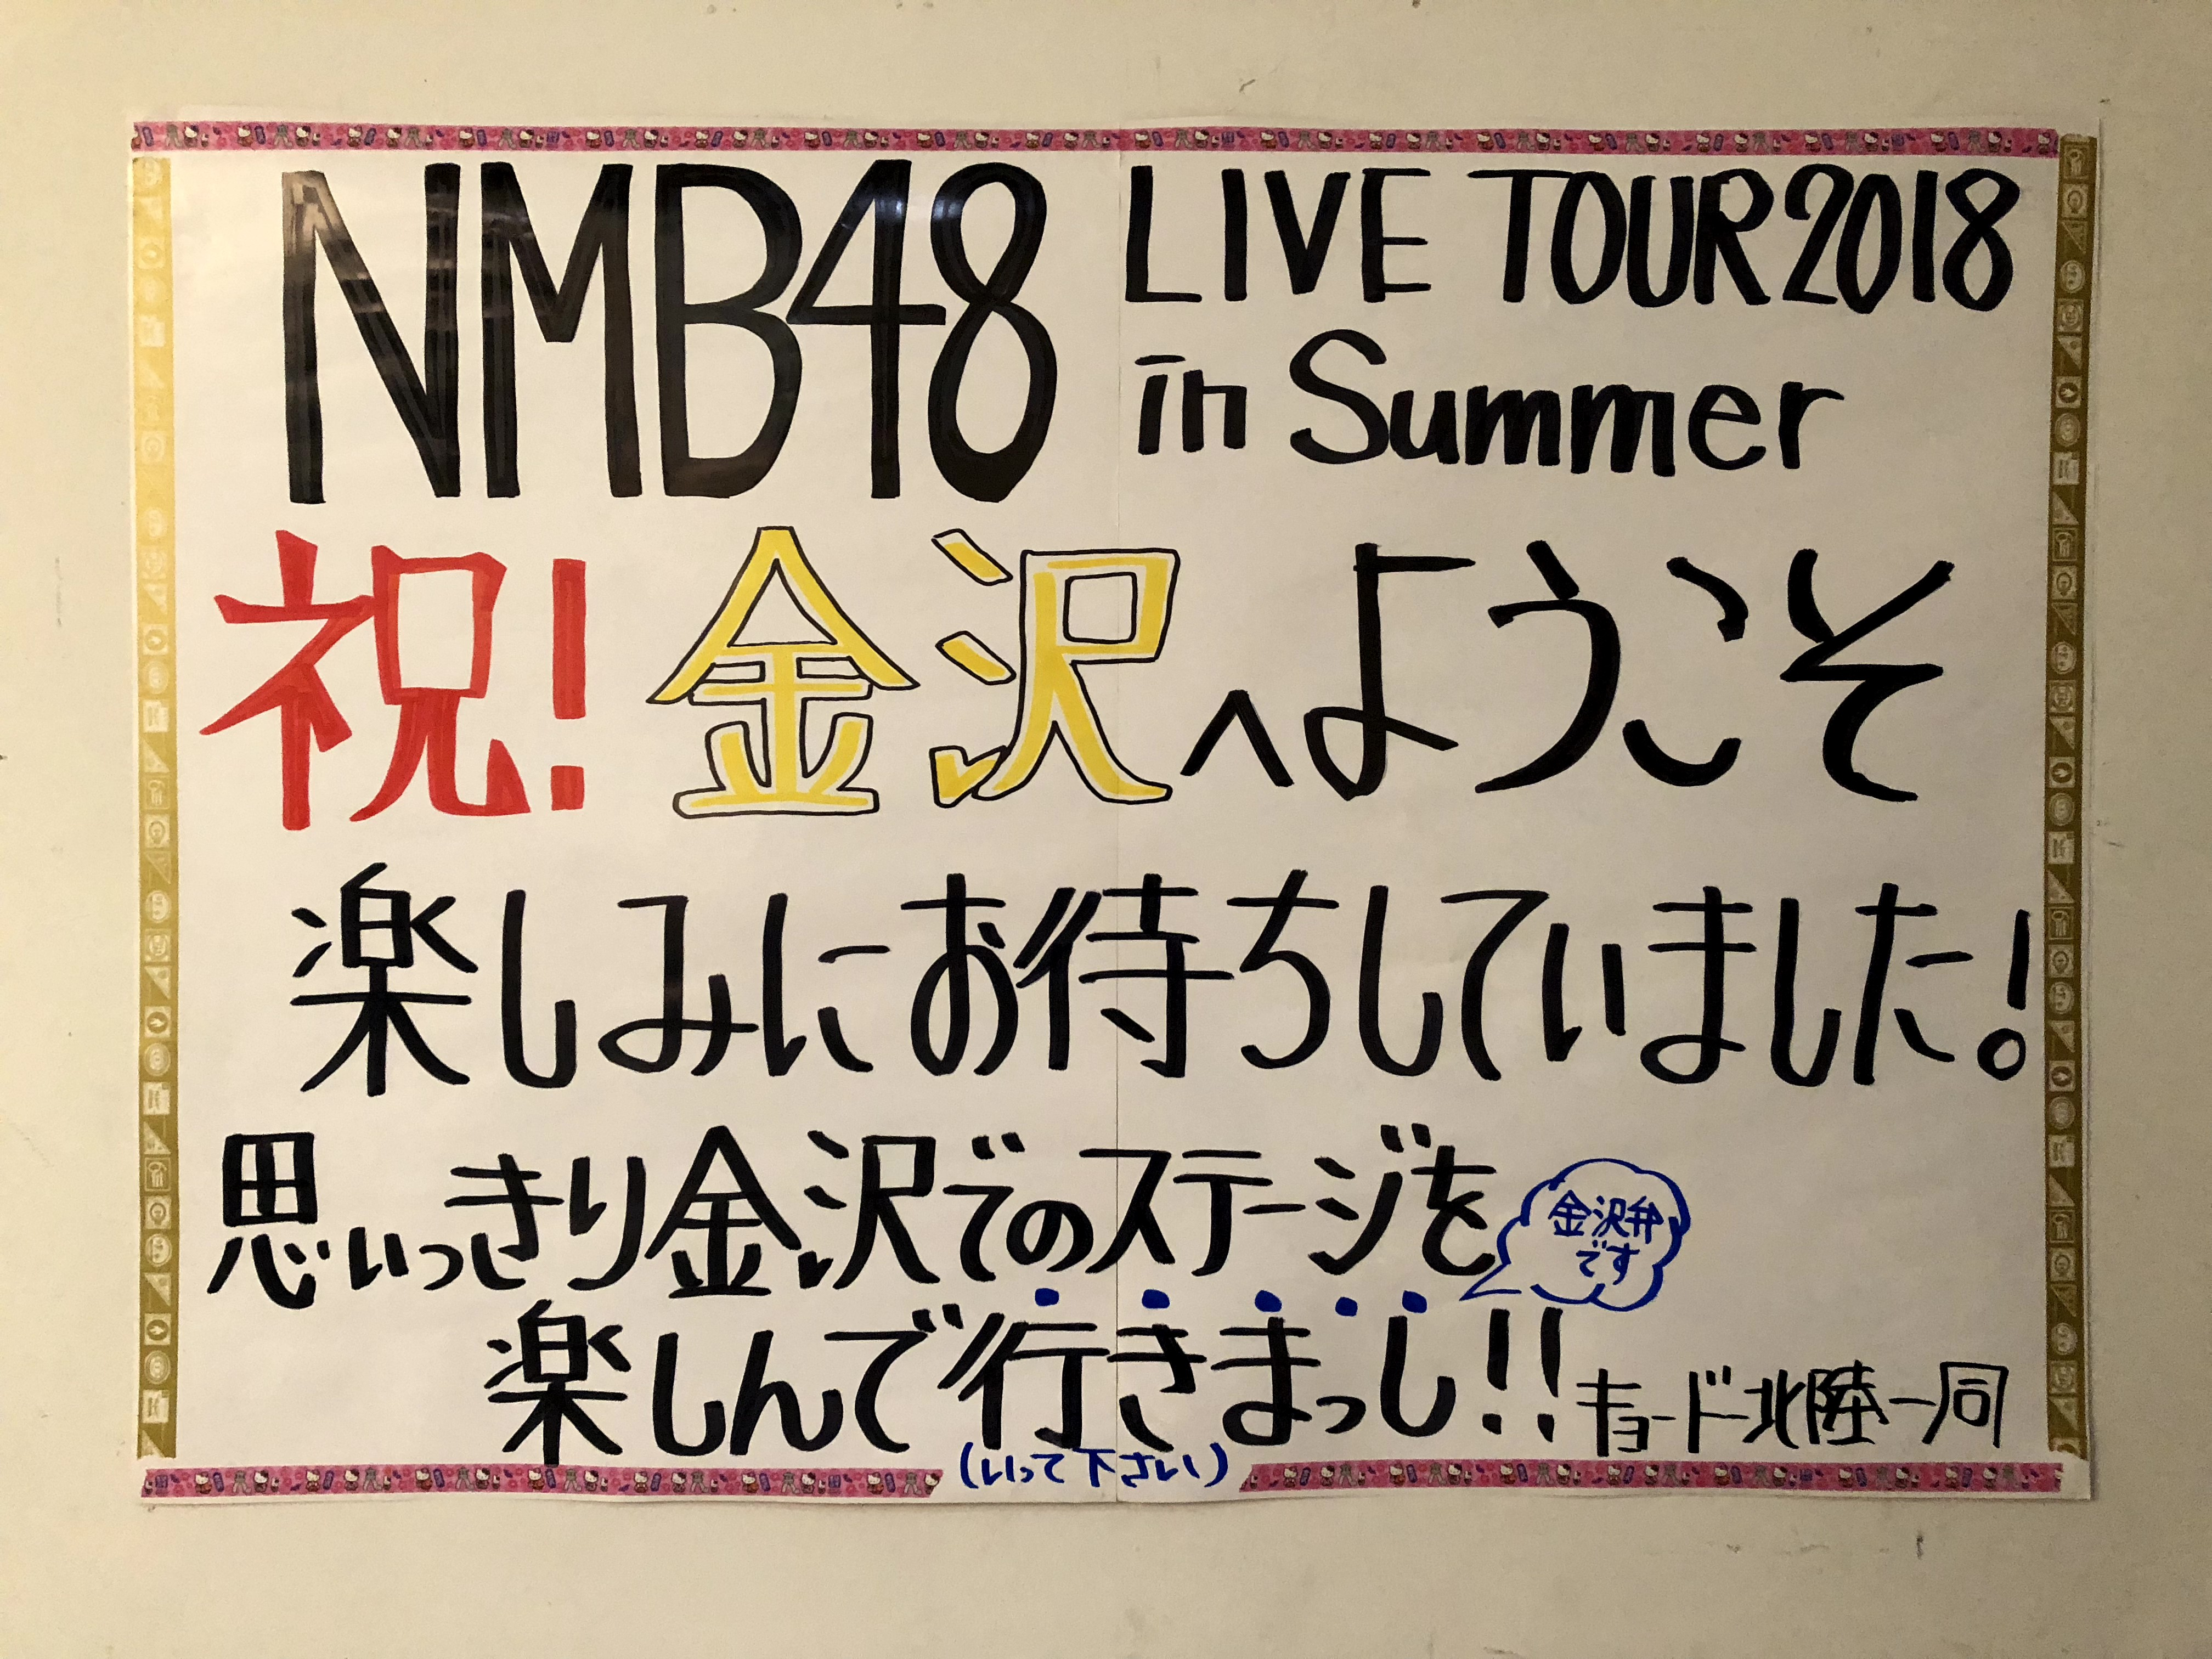 NMB48 LIVE TOUR 2018 in Summer・石川公演の画像-003